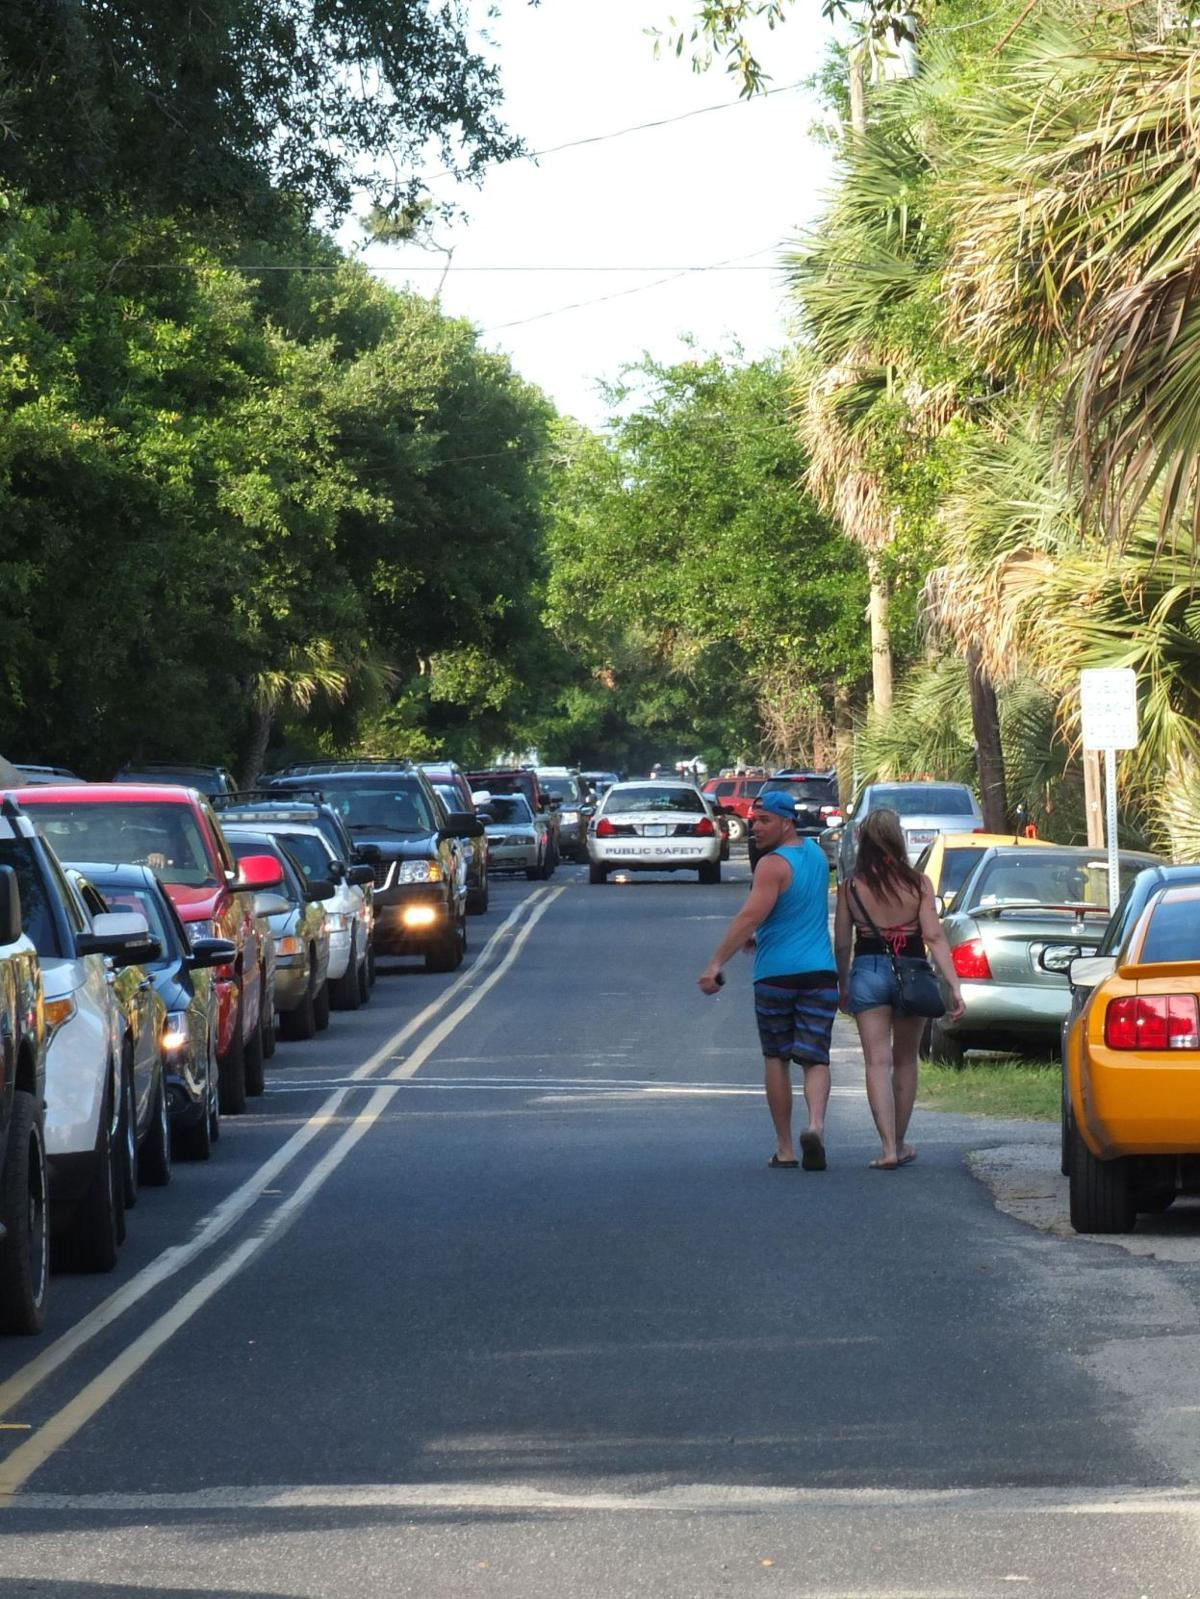 Police: Memorial Day traffic jam on Folly was 'unintended'